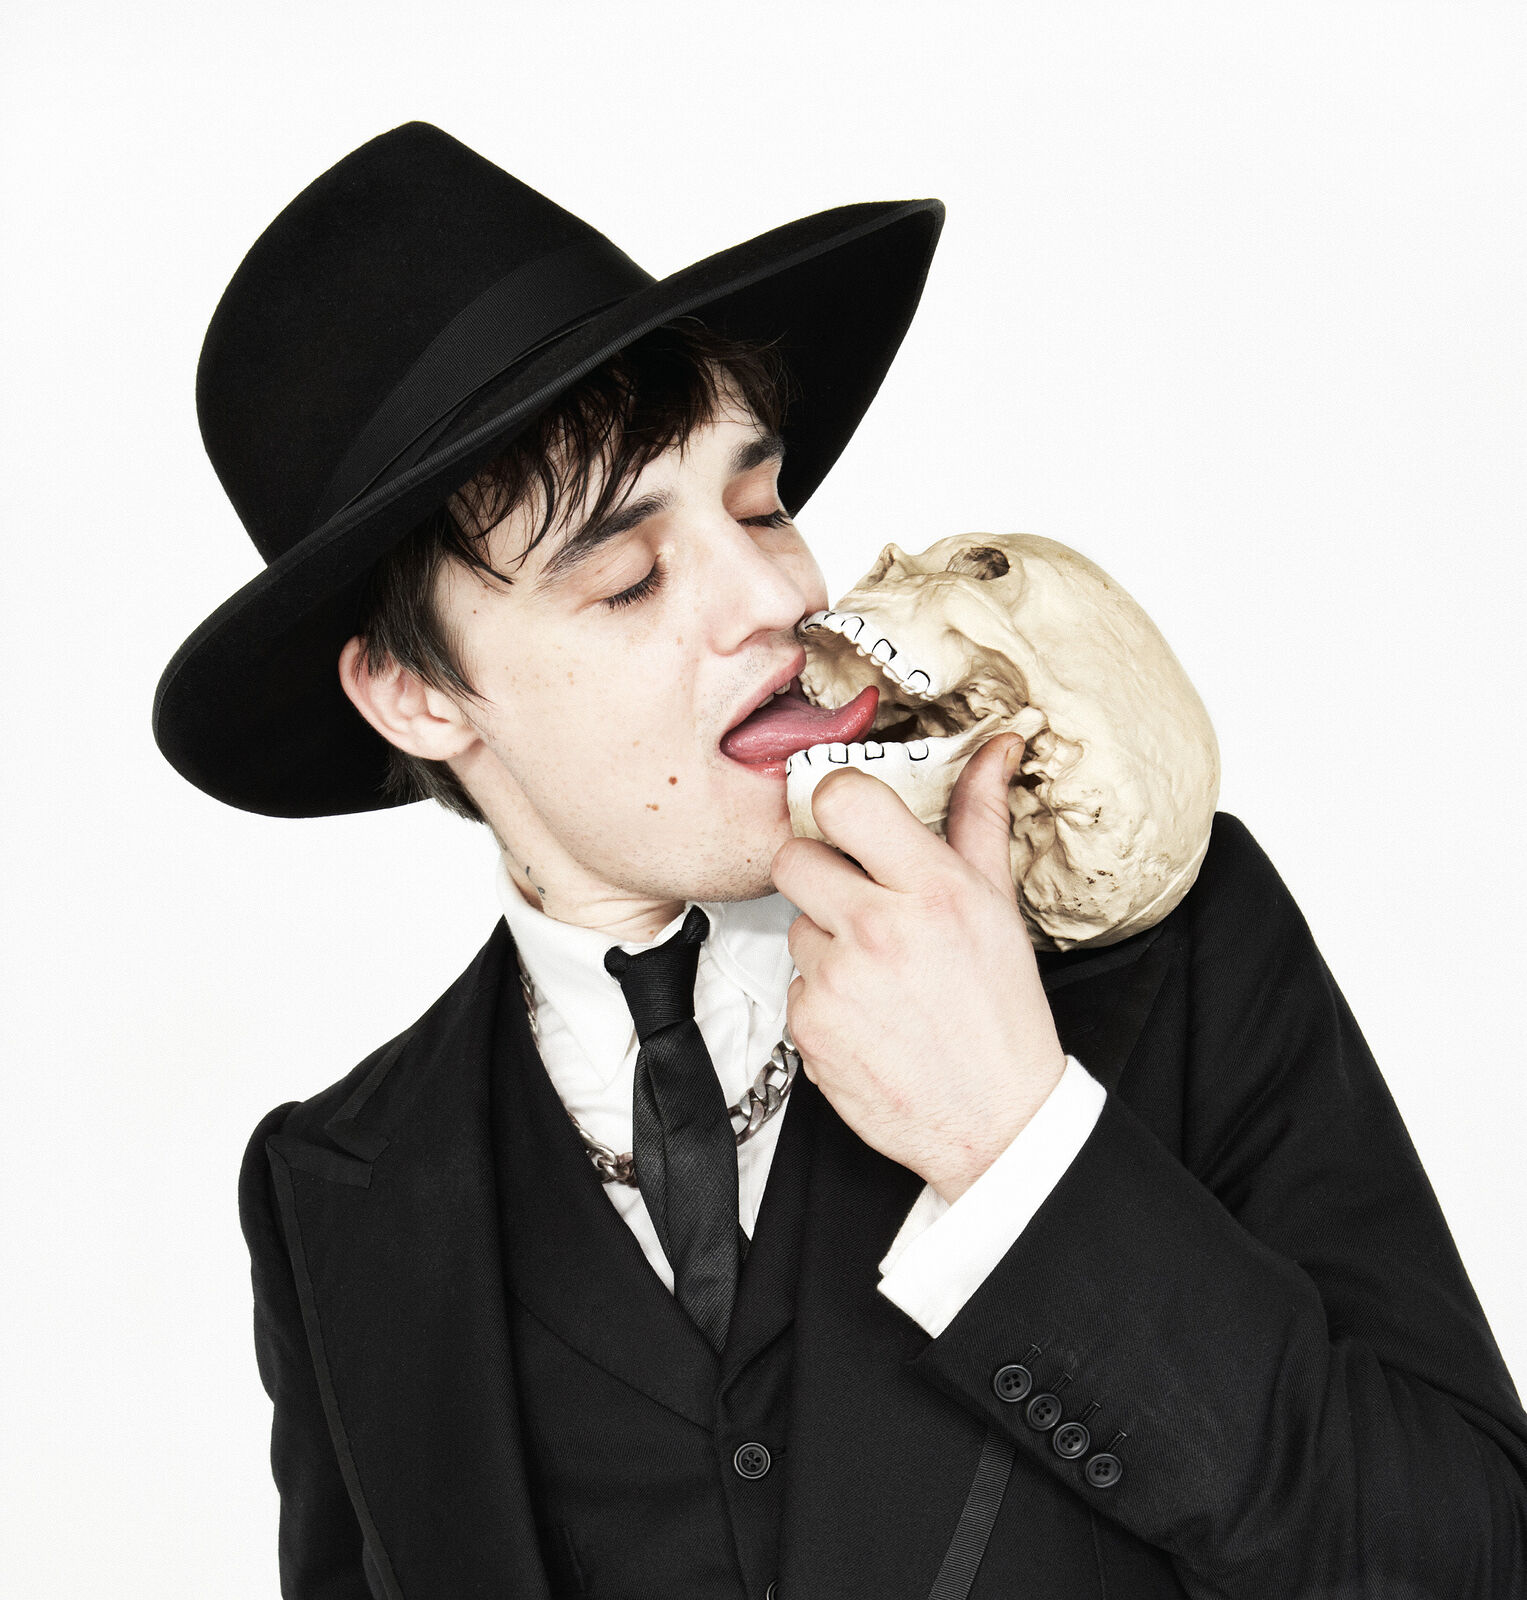 Peter Doherty Limited Edition Fine Art Print